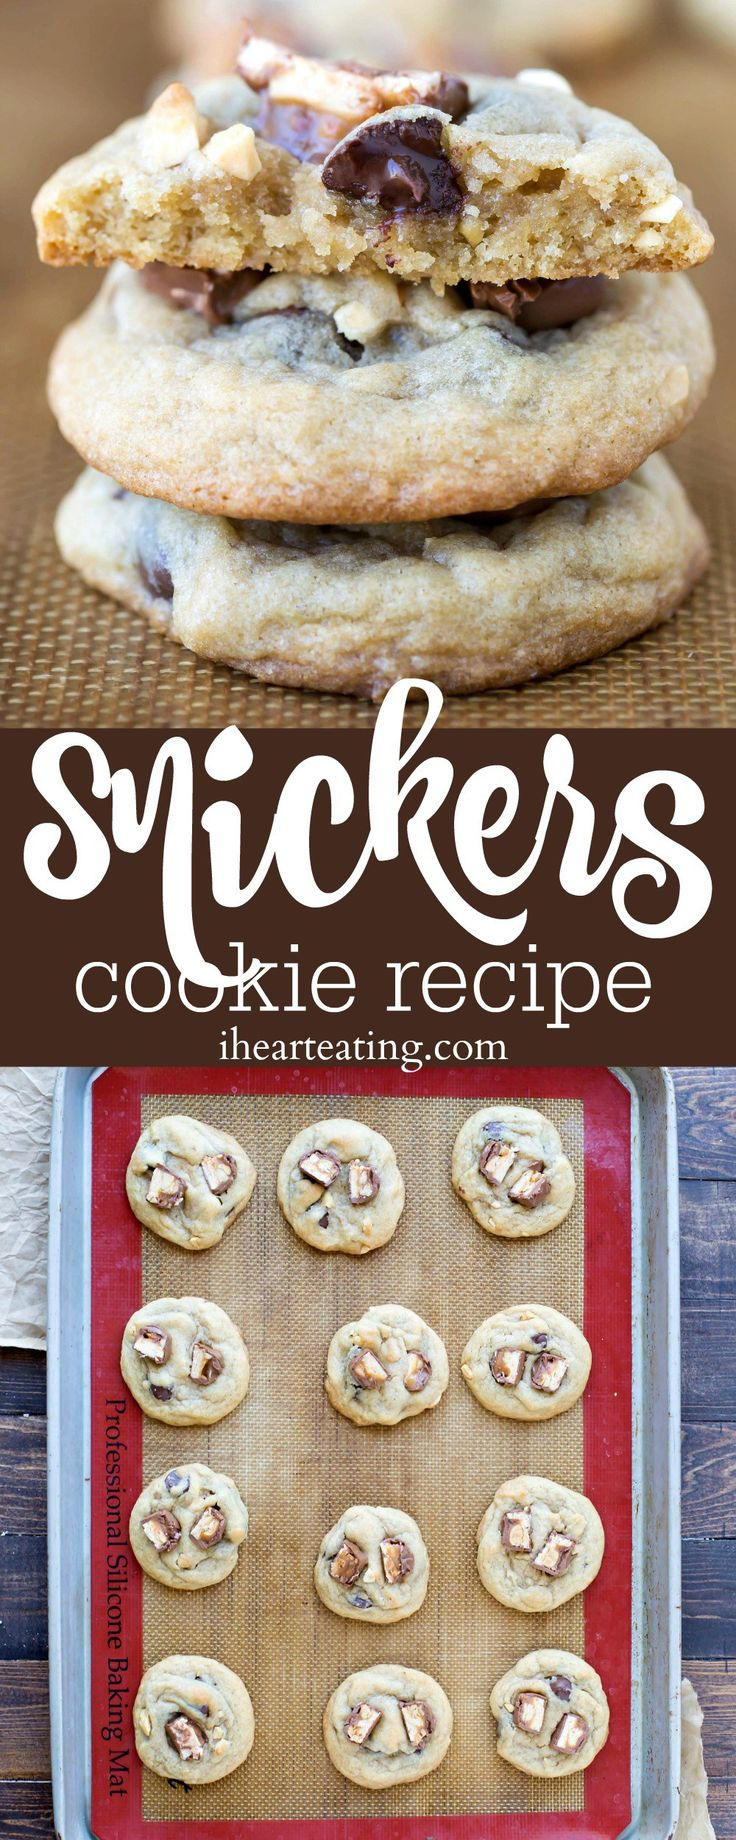 Snickers Cookie Recipe- soft and chewy chocolate chip cookies topped with pieces of Snickers candy bars!